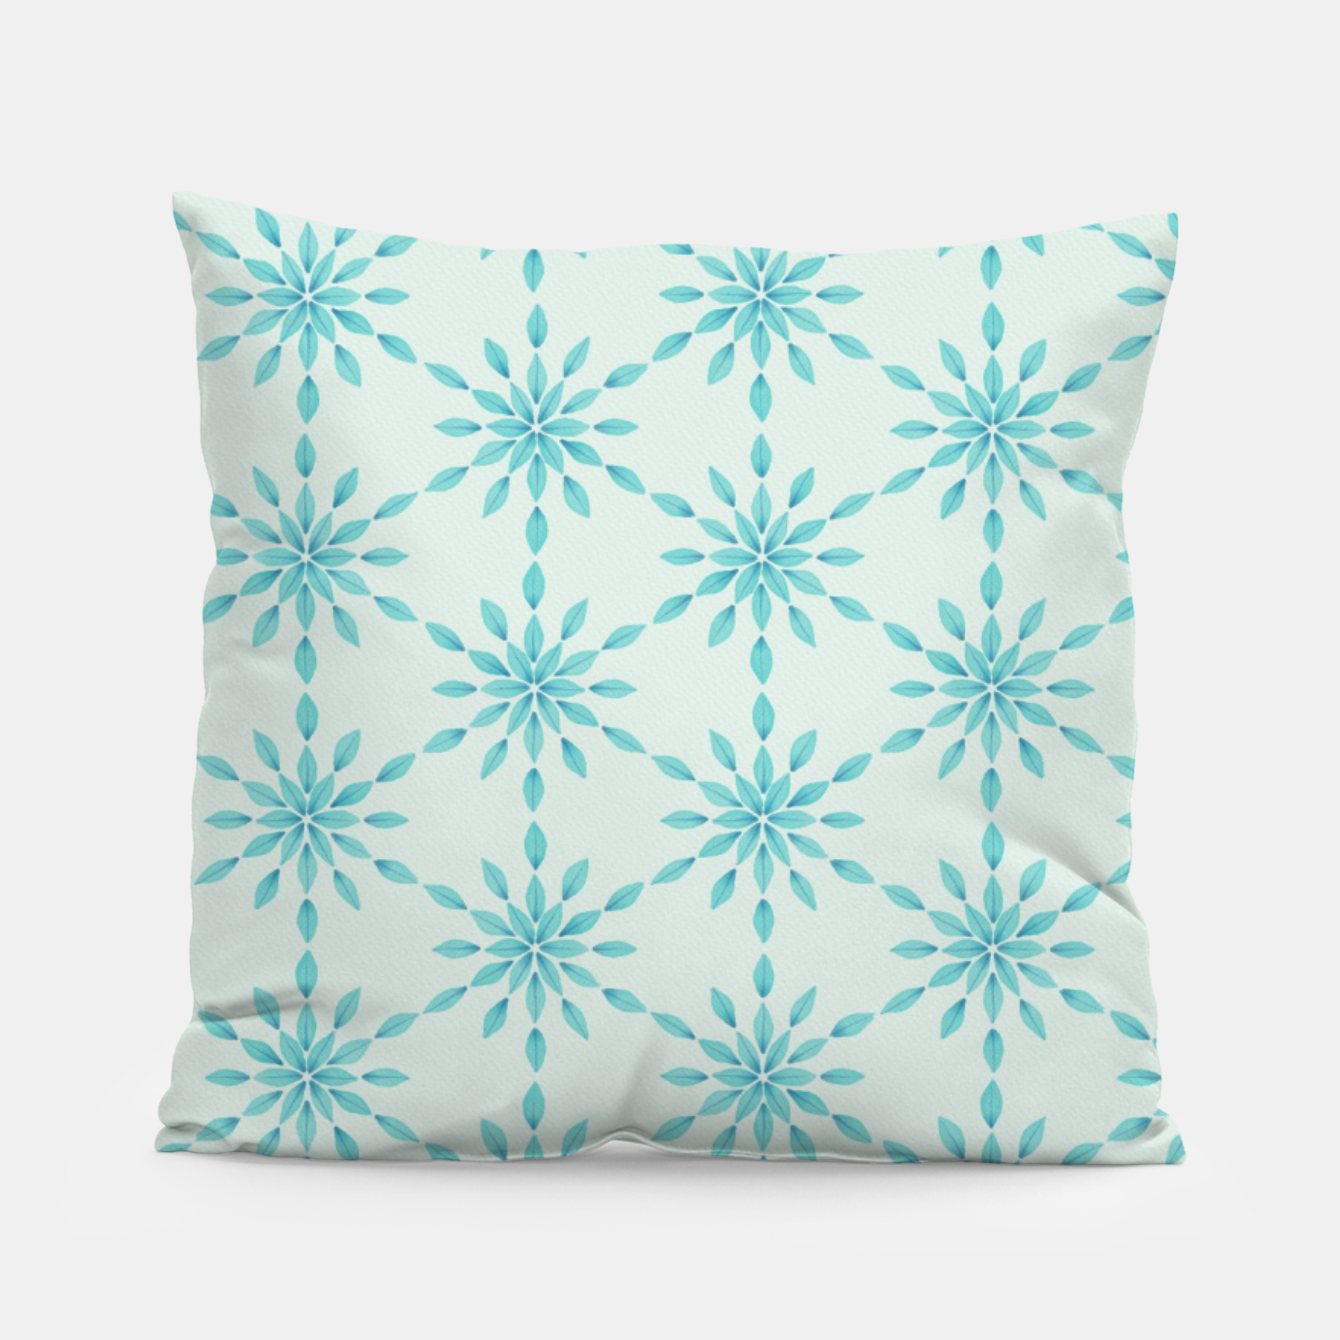 Zdjęcie Simple Pretty Hand Painted Watercolor Snowflakes Winter Holiday Pattern, Turquoise, Teal, Mint Color Pillow - Live Heroes